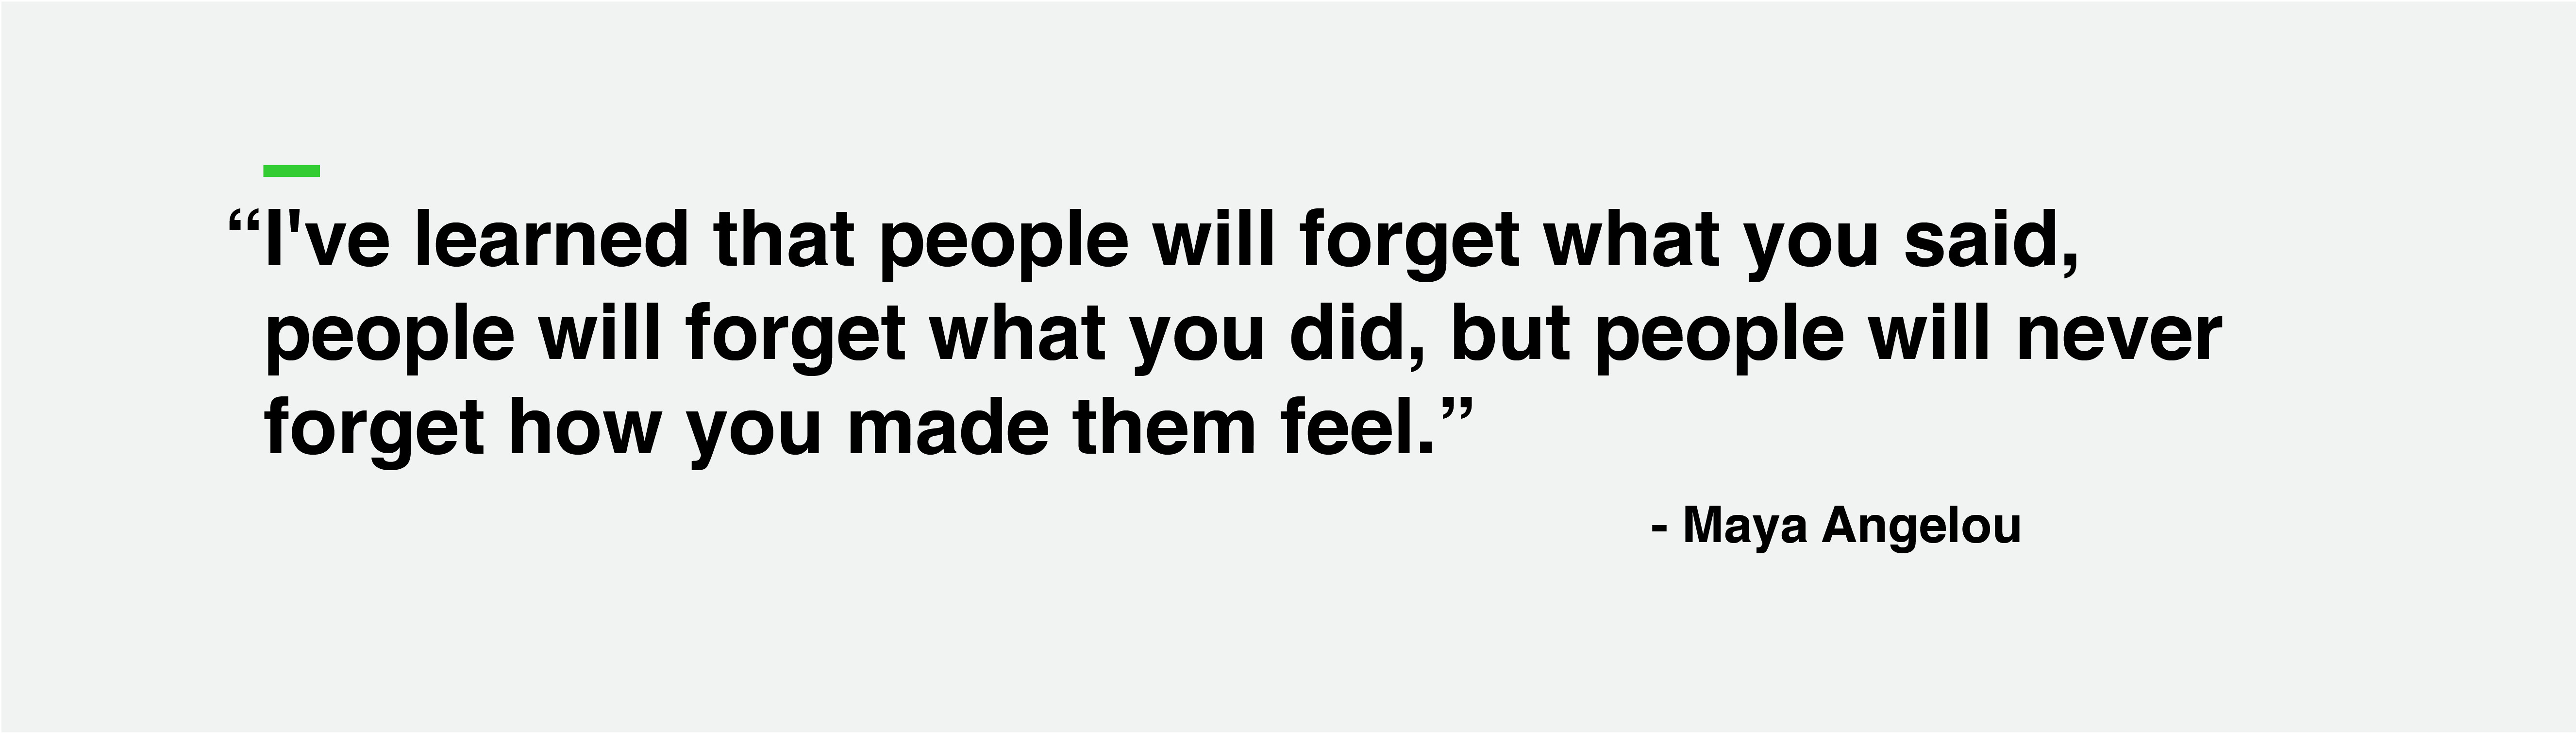 """I've learned that people will forget what you said, people will forget what you did, but people will never forget how you made them feel."" - Maya Angelou"